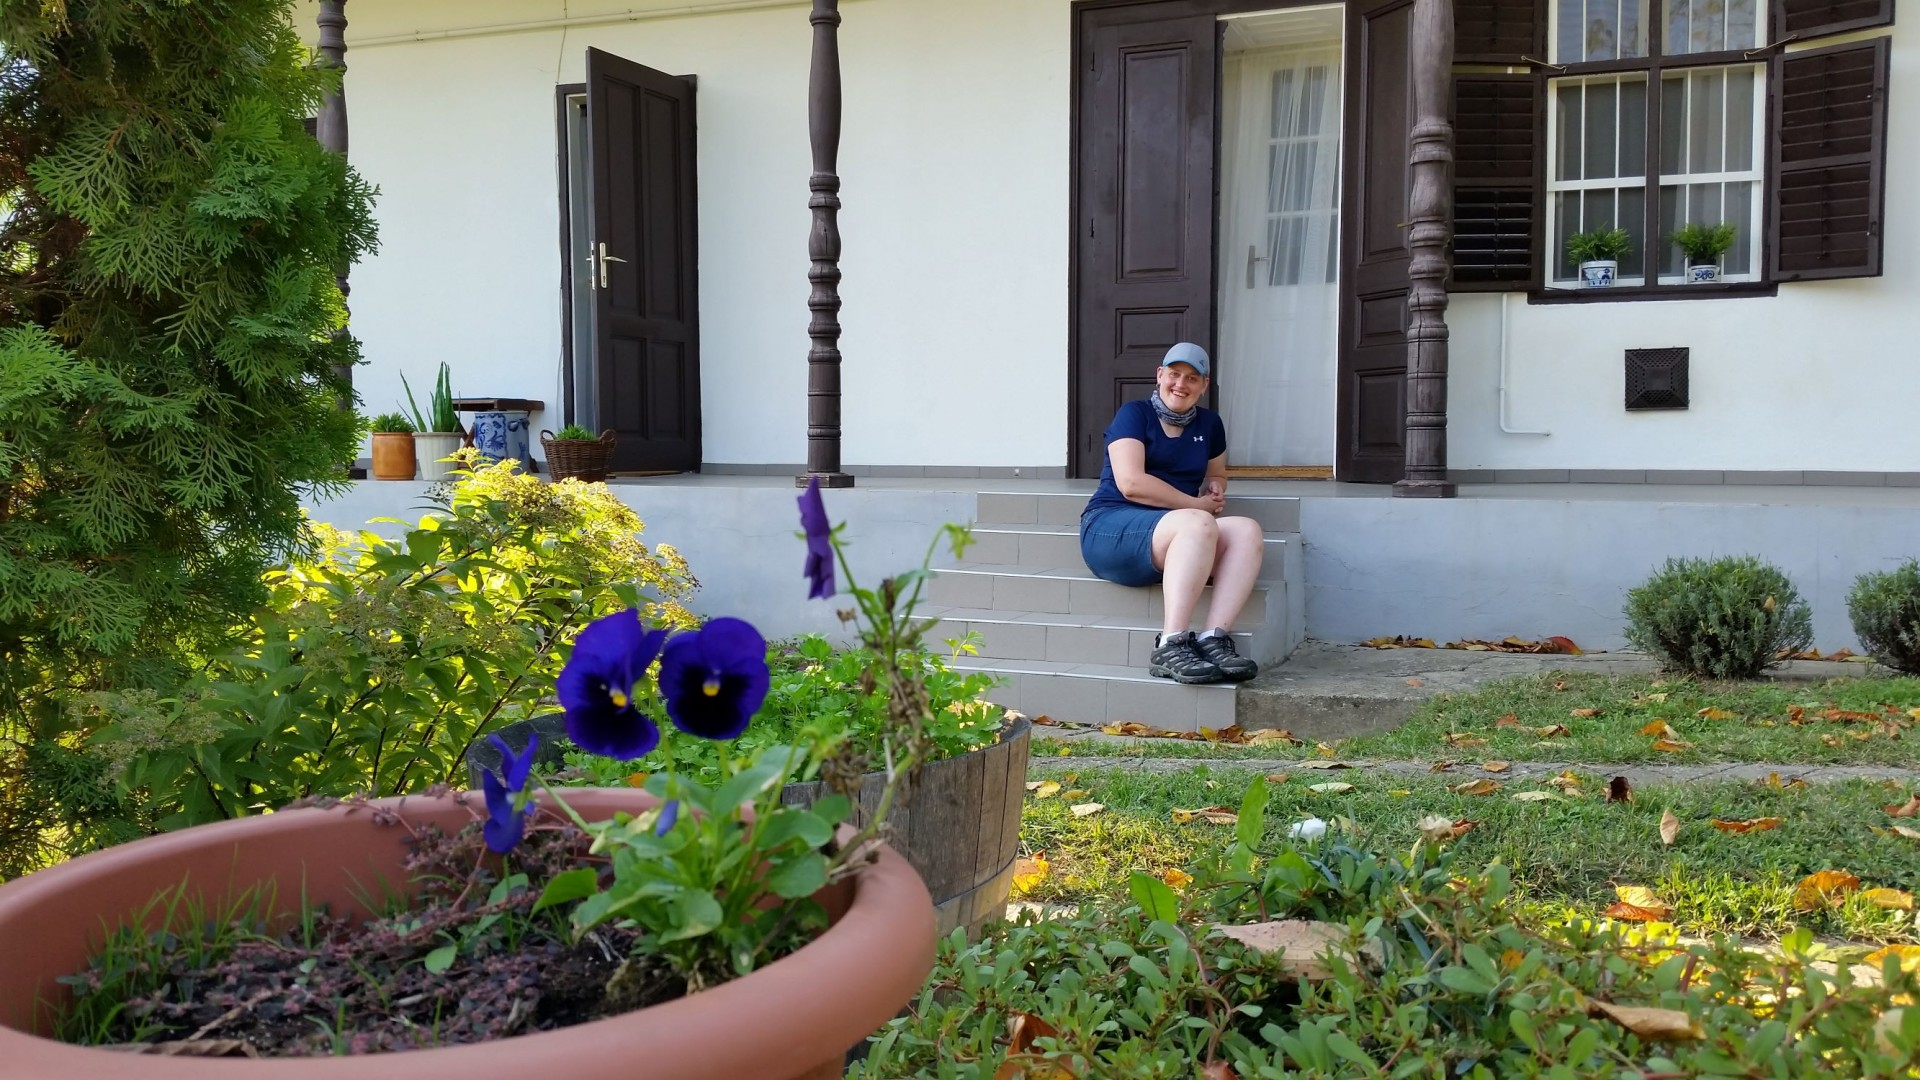 Home to Hungary, Pivotal Point in Oregon Wisconsin